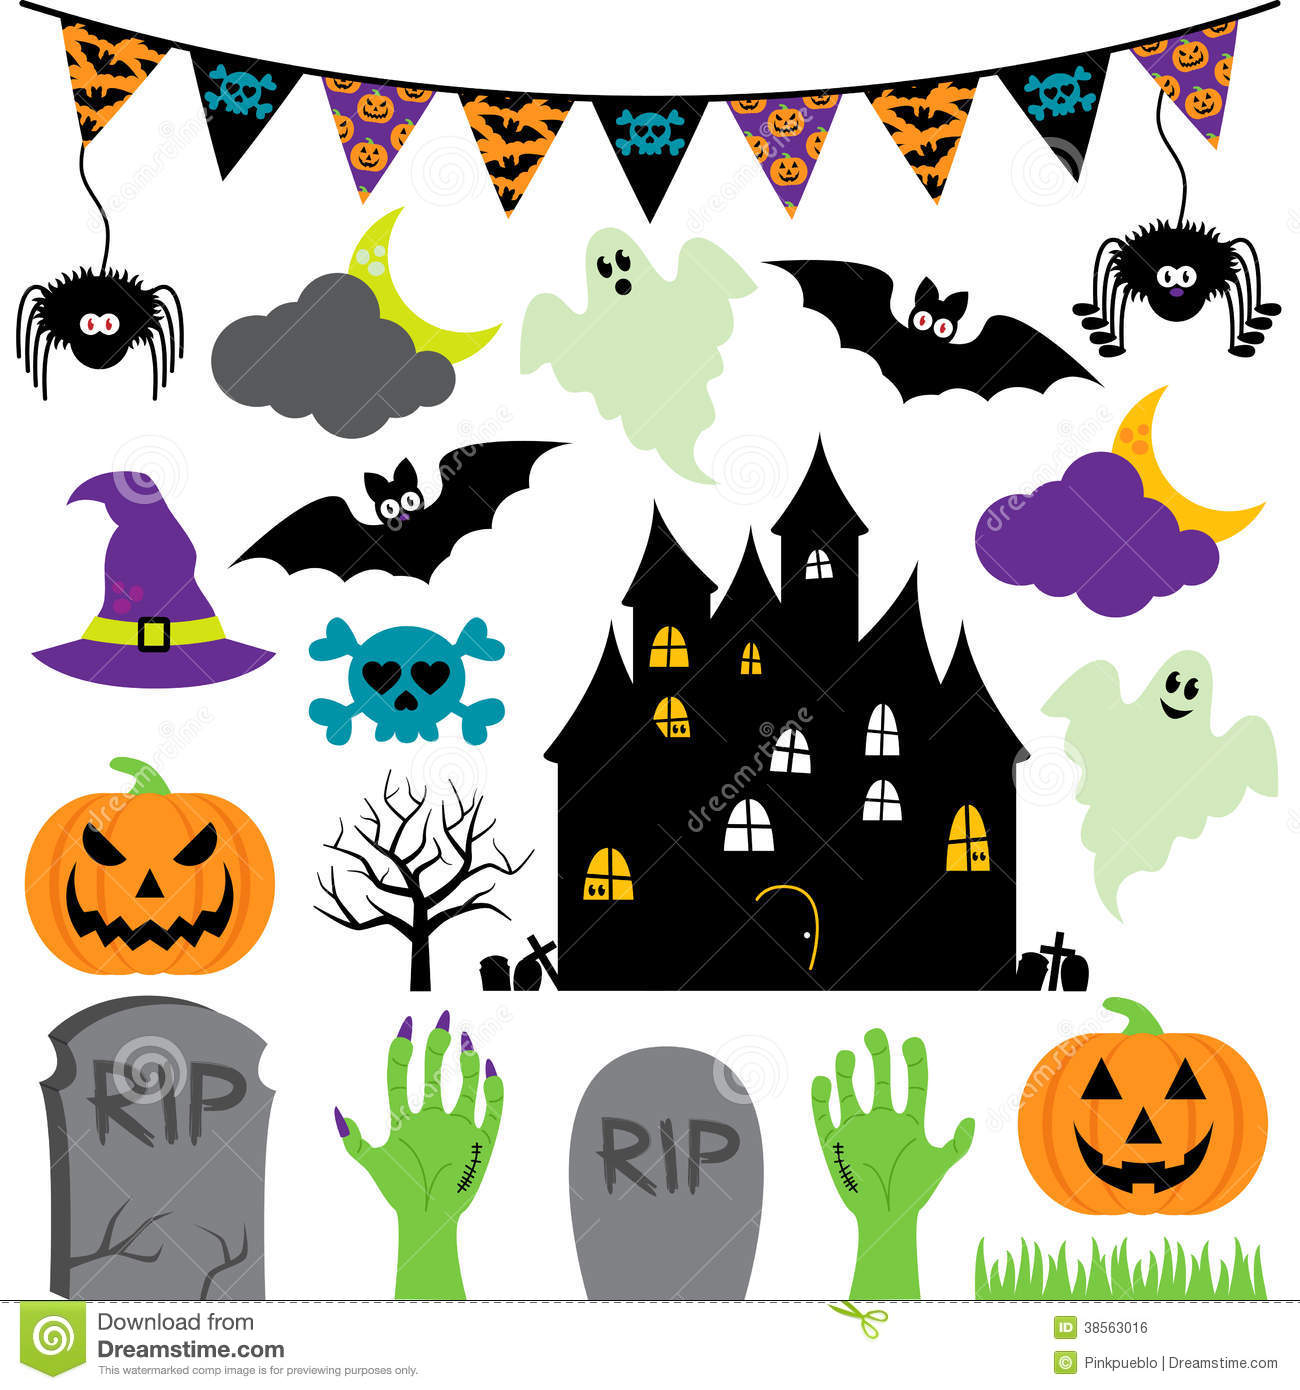 Halloween decoration clipart - Vector Halloween Set With Scary And Cute Elements Royalty Free Stock Image